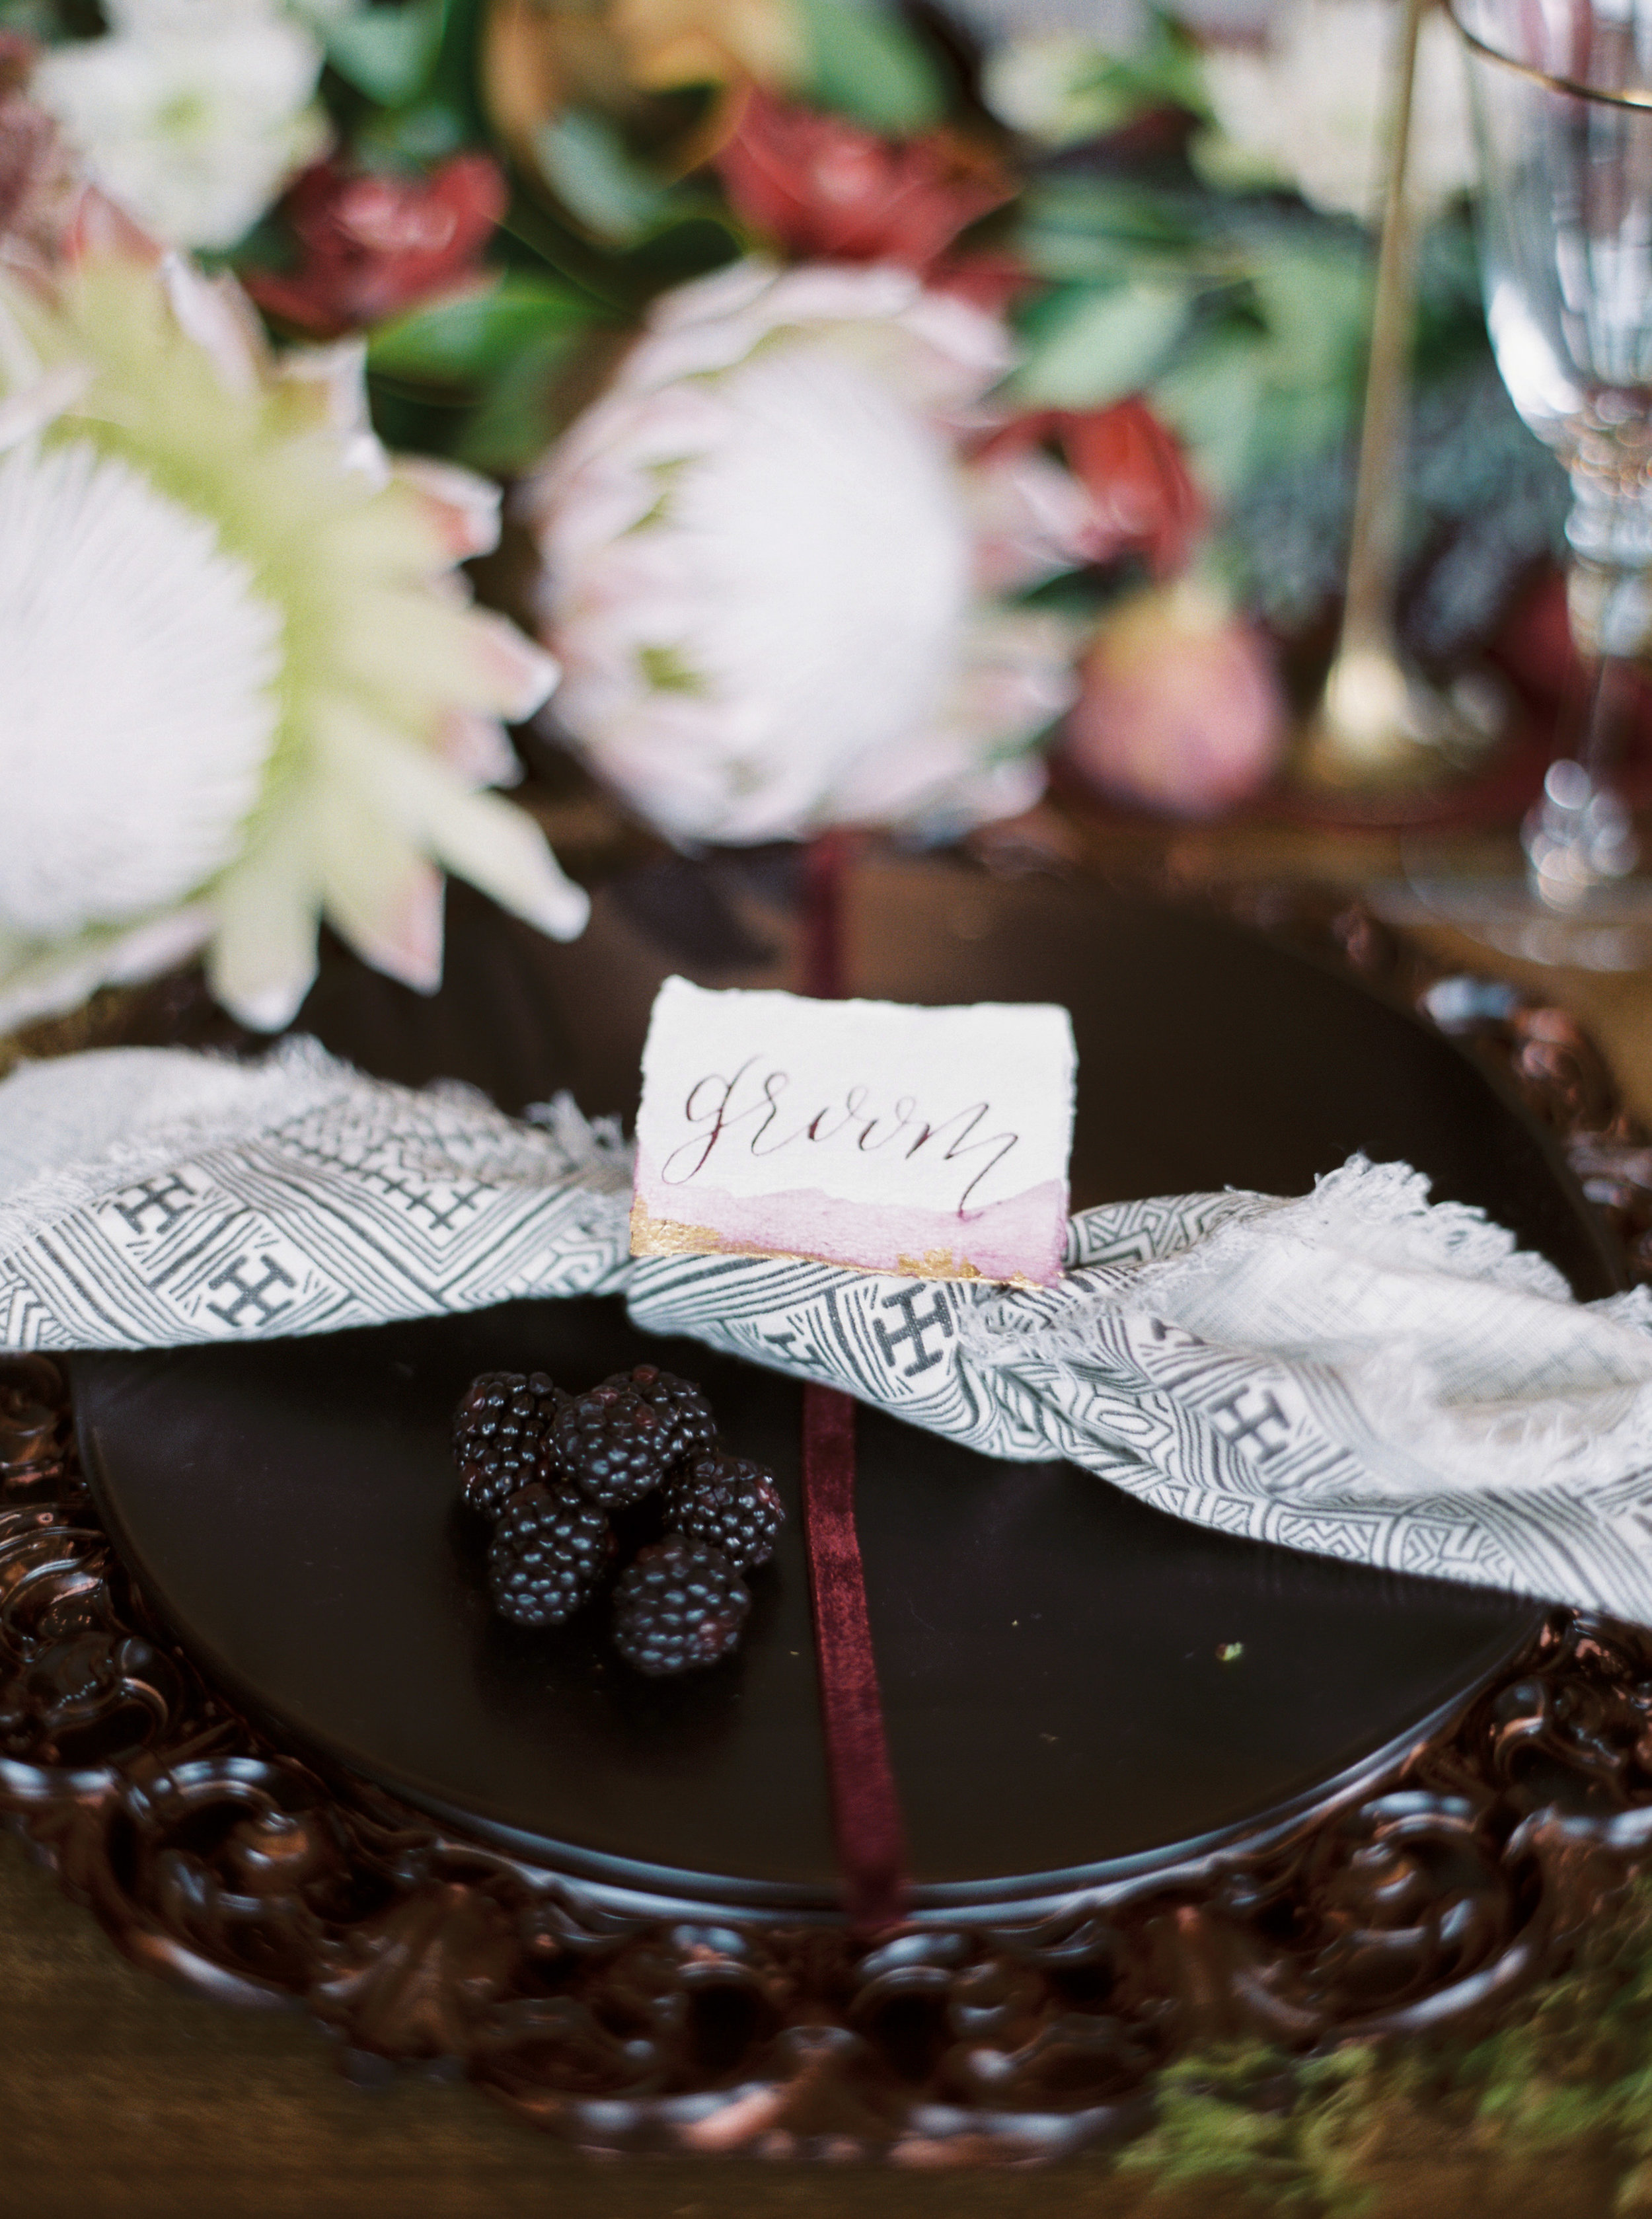 boho-inspired-wedding-at-casa-bella-in-sunol-california-65.jpg